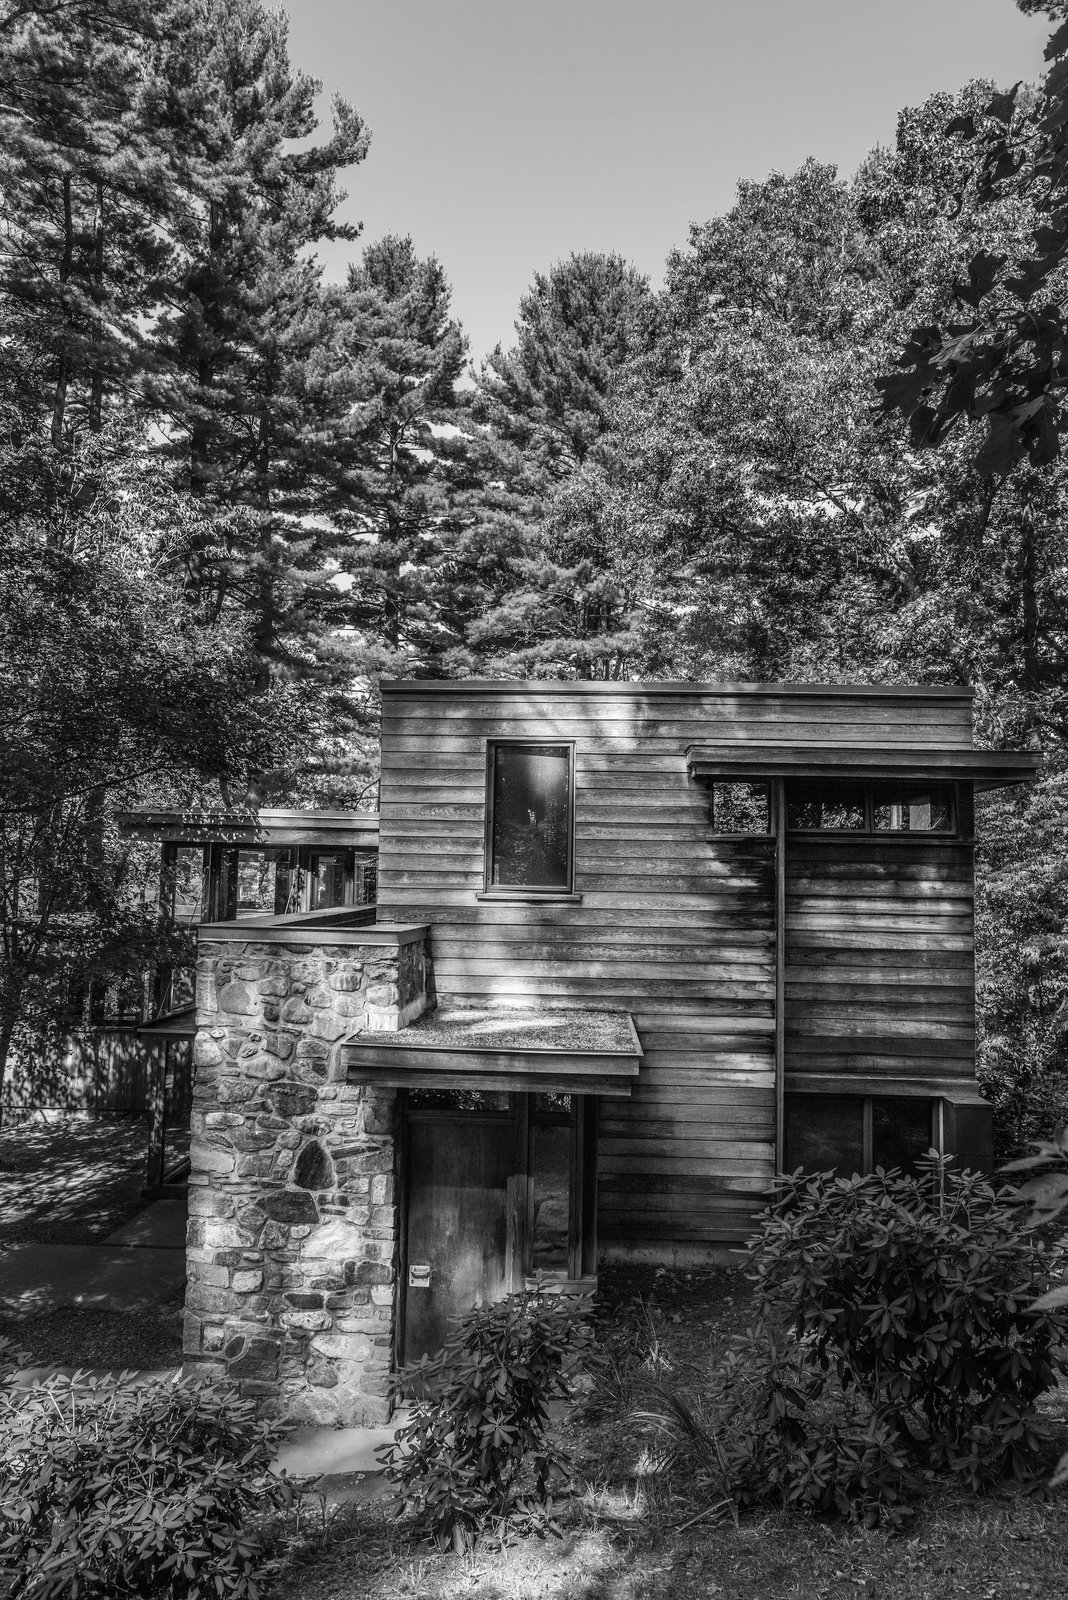 The stone and wood structure was designed to complement with its surroundings. Here, the Douglas fir tongue-and-groove boards are arranged horizontally, elsewhere on the original facade they were aligned vertically.